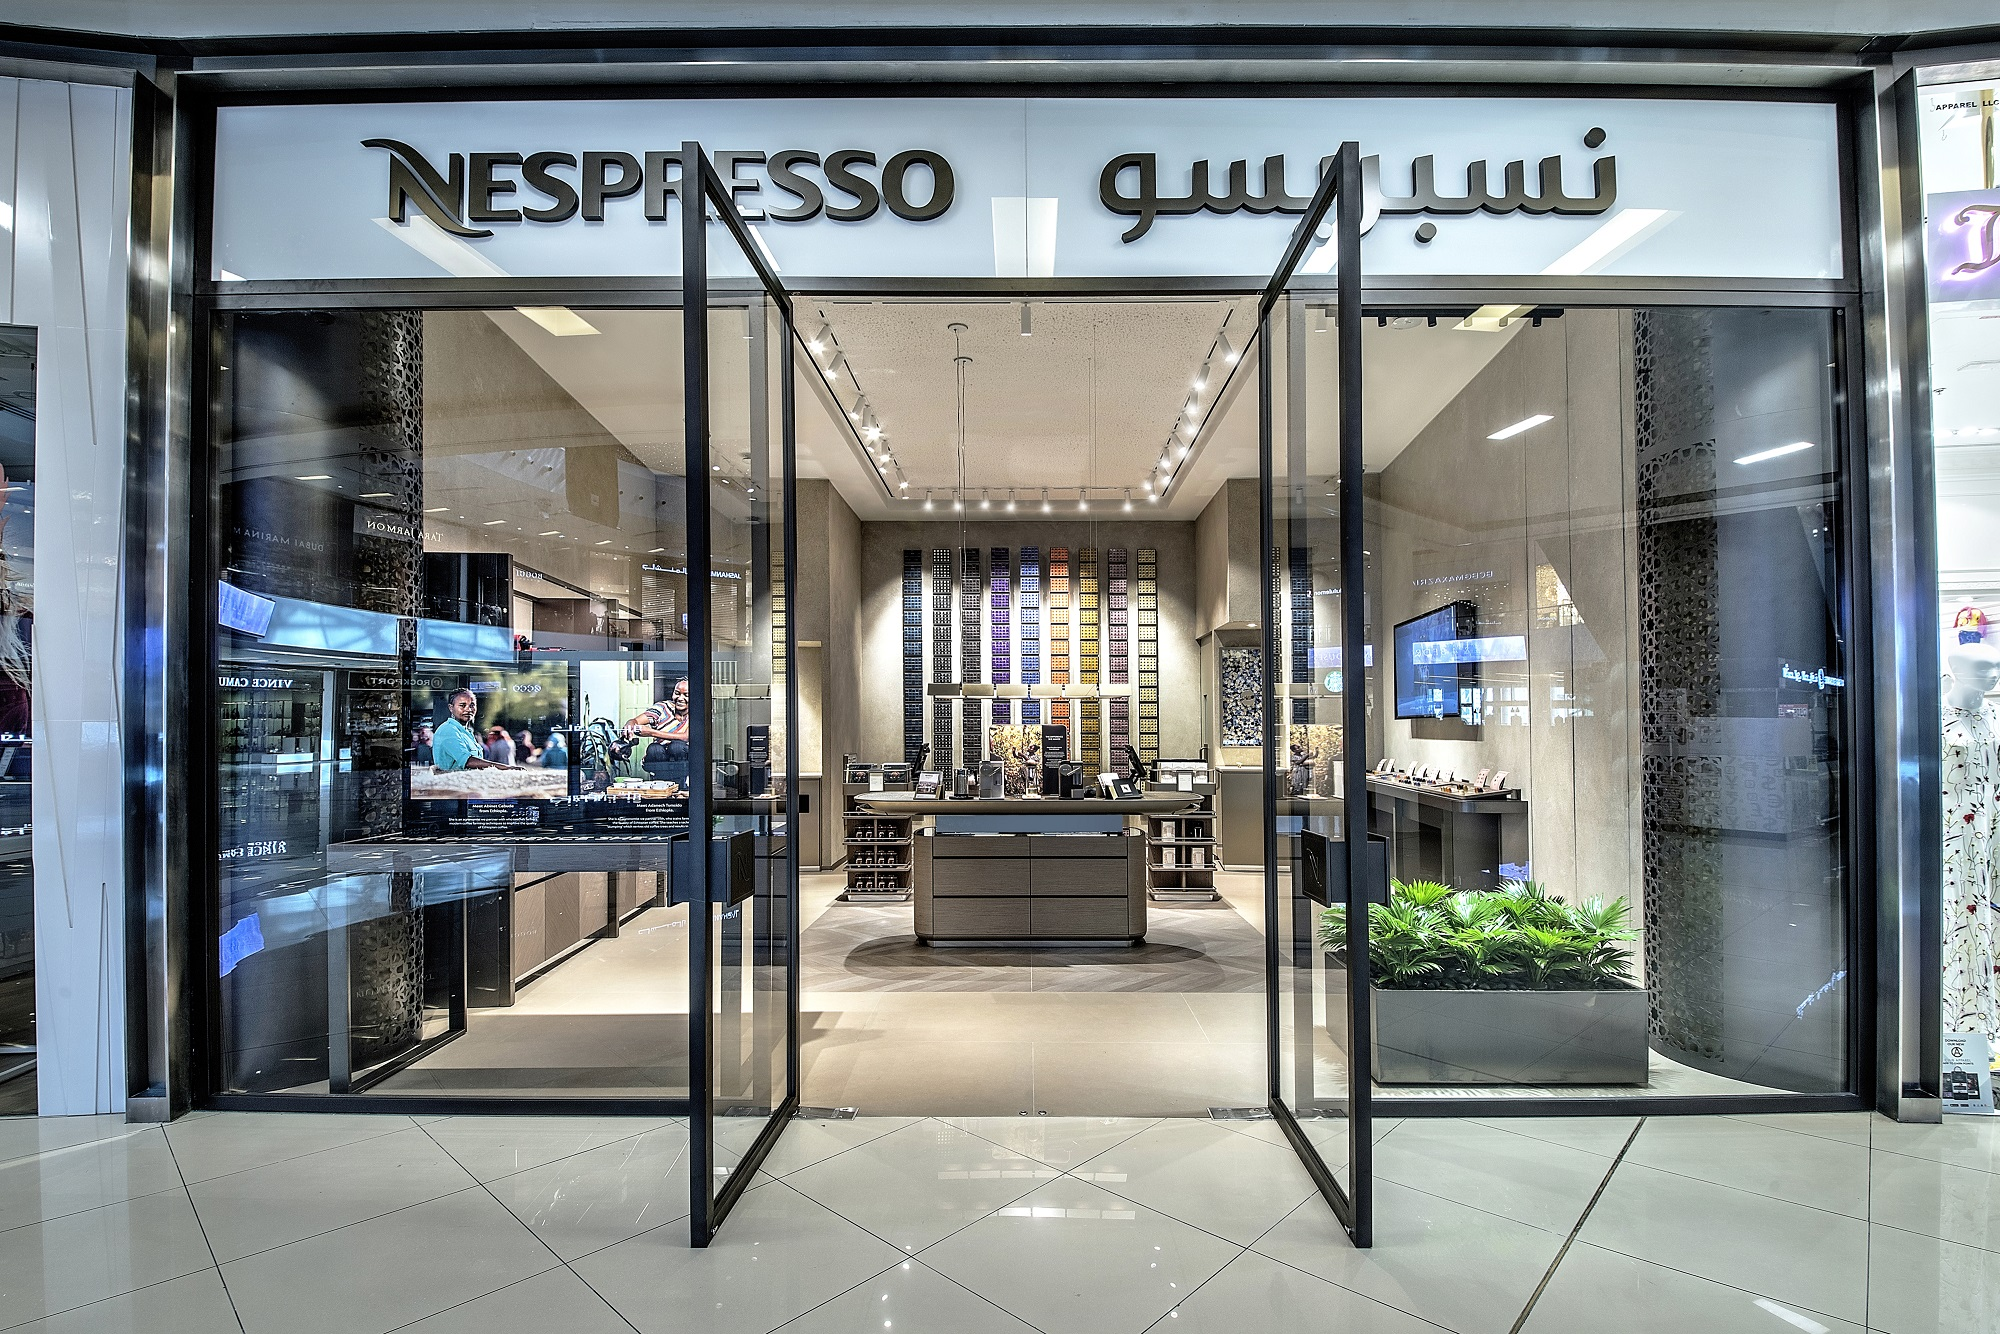 afbfaf61b45 Nespresso has launched a new boutique in Dubai Marina Mall. Located on the  ground floor of the mall